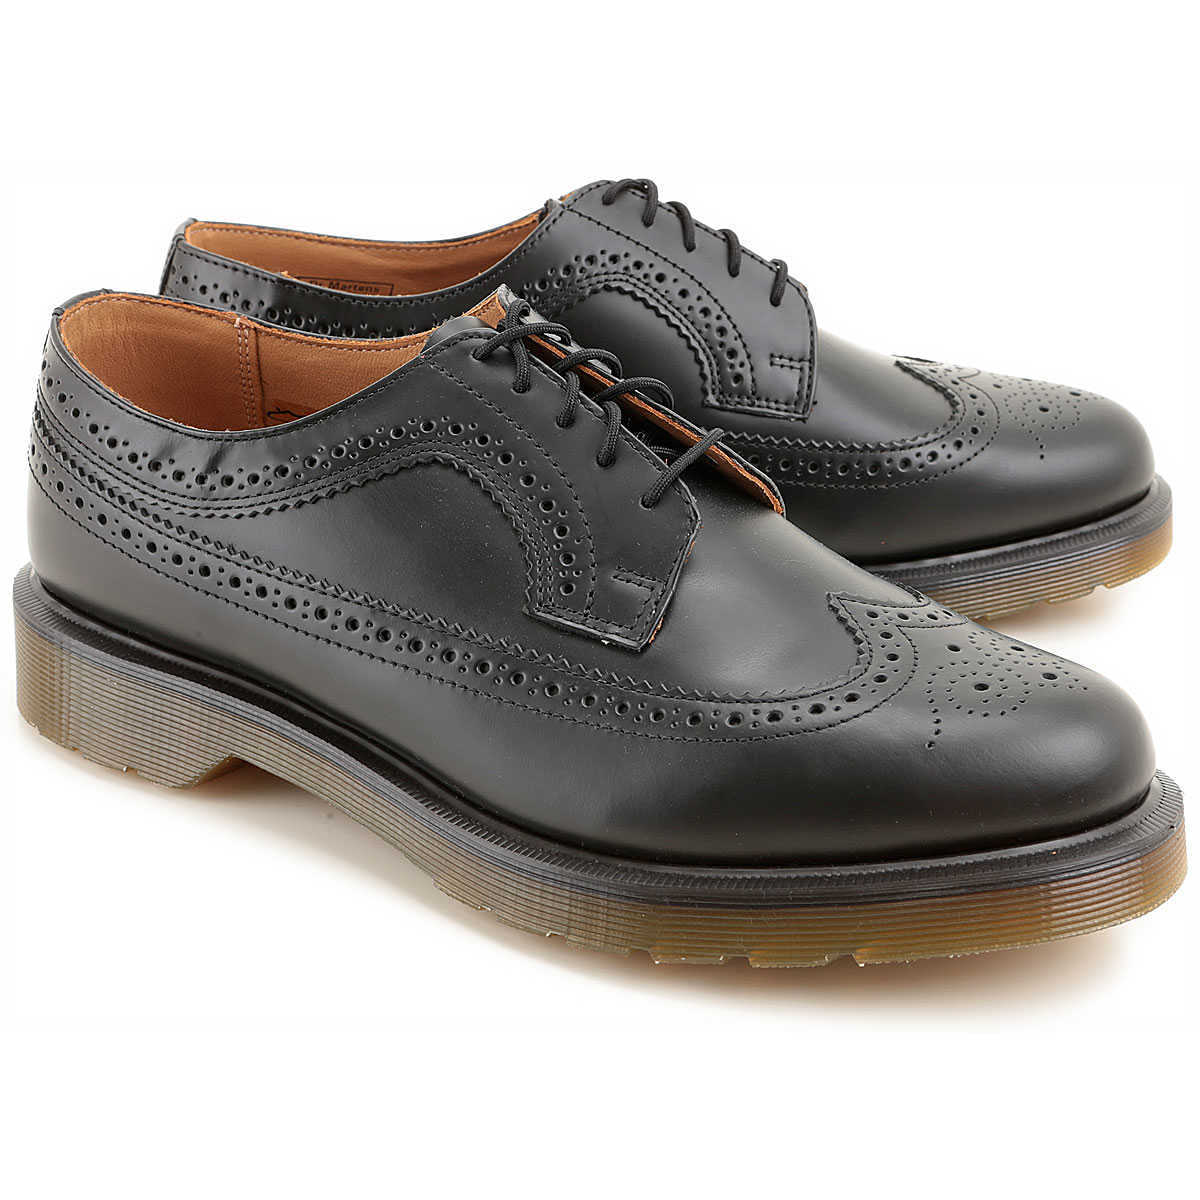 Dr. Martens Lace Up Shoes for Men Oxfords6.5 Derbies and Brogues On Sale in Outlet UK - GOOFASH